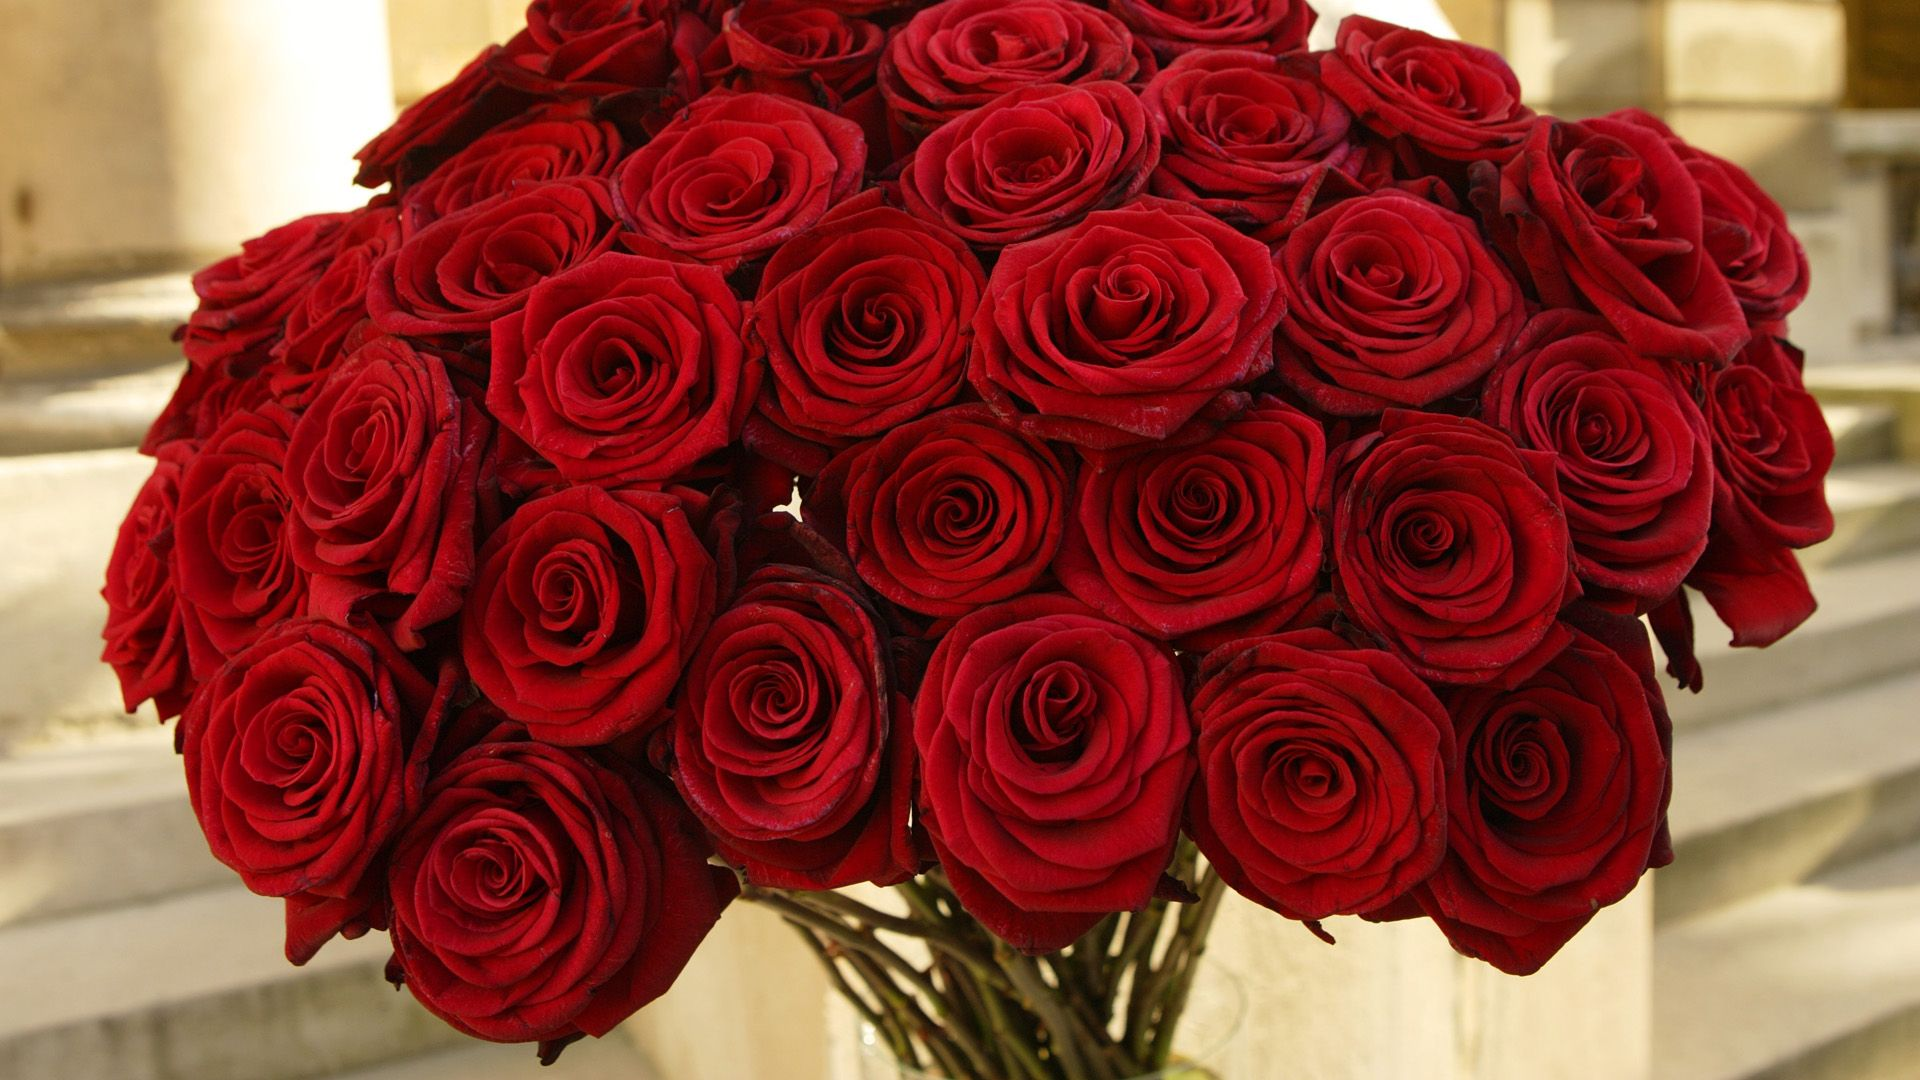 valentines-day-red-rose-bouquet-hd-desktop-wallpaper-widescreen-backgrounds-for-mobile-tablet-and-pc-free-images-download-1920x1080